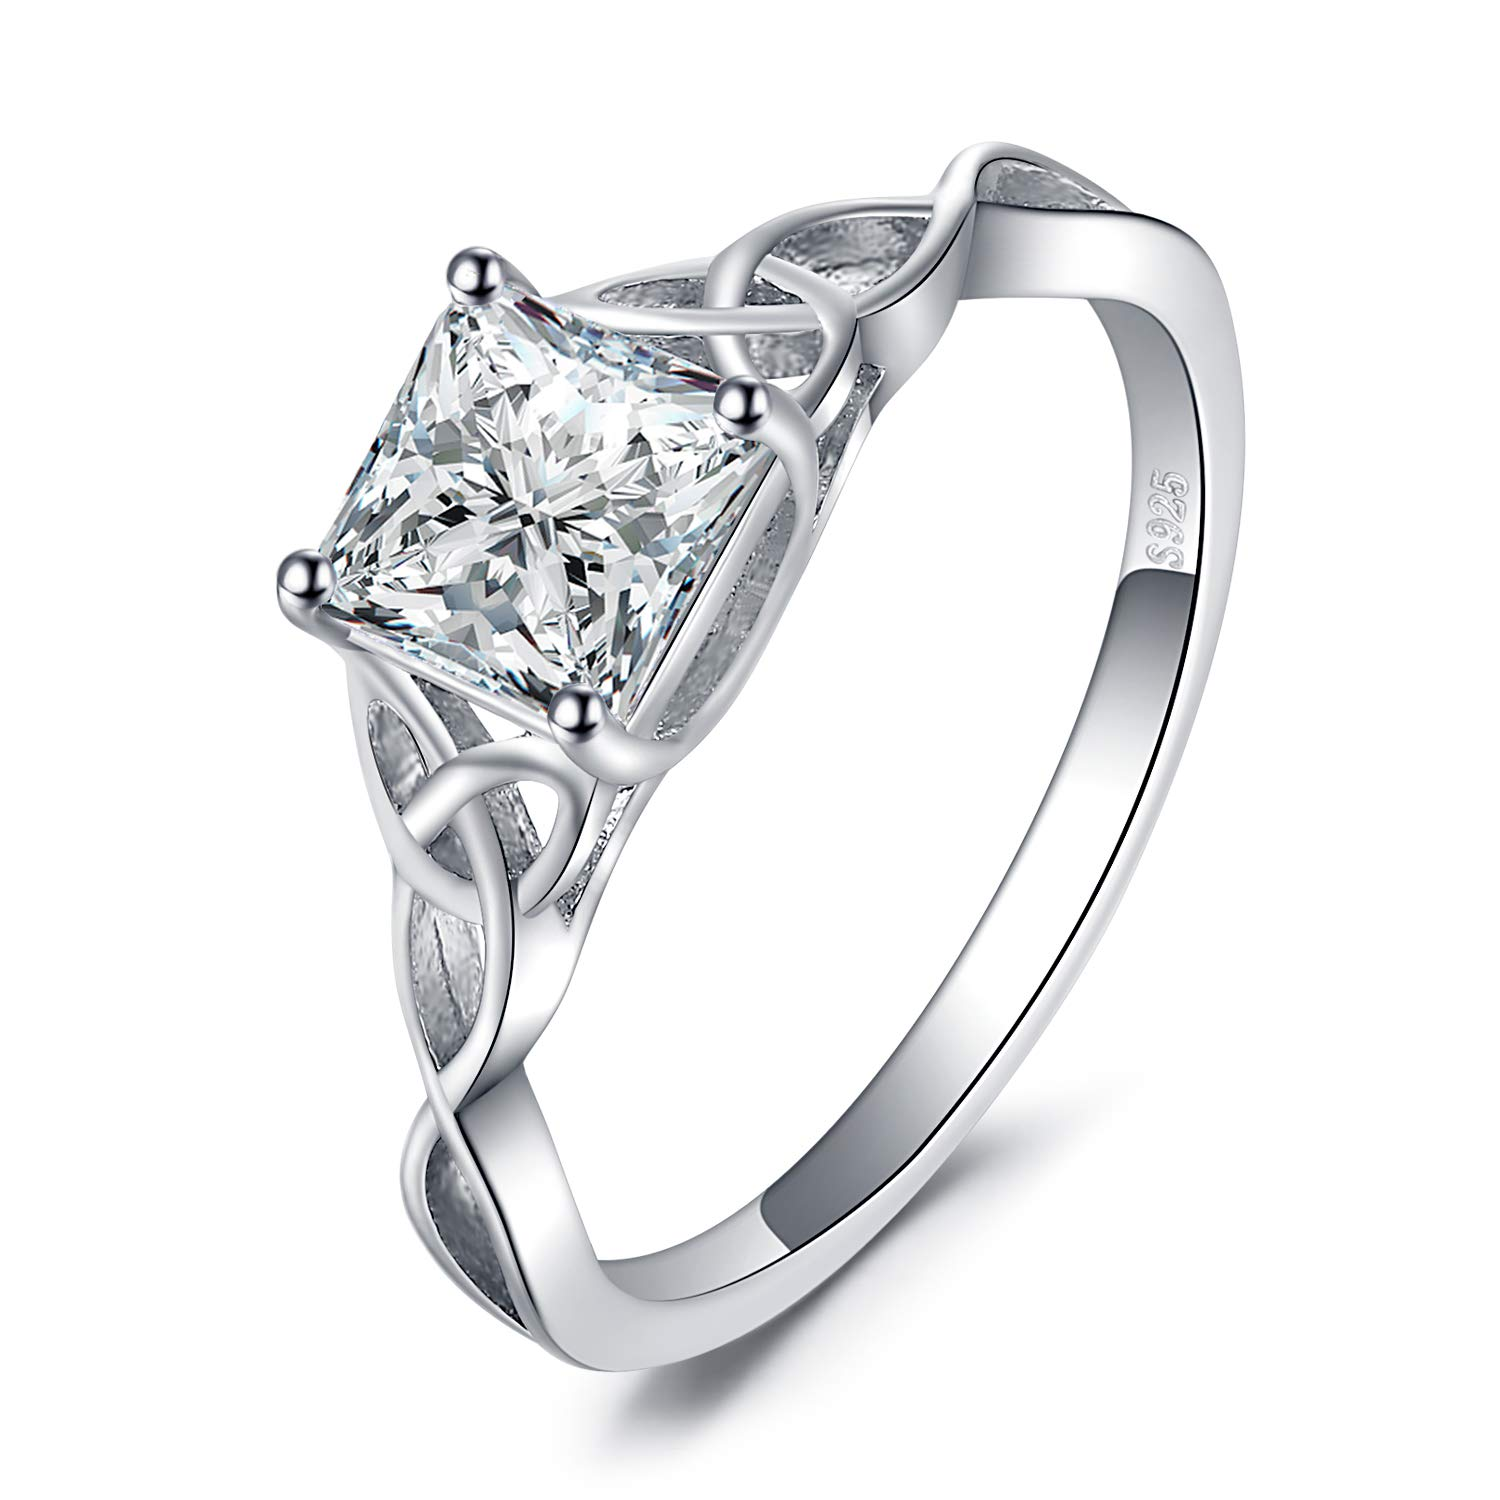 JewelryPalace Infinity Celtic Knot Princess Cut Cubic Zirconia Solitaire Engagement Ring 925 Sterling Silver